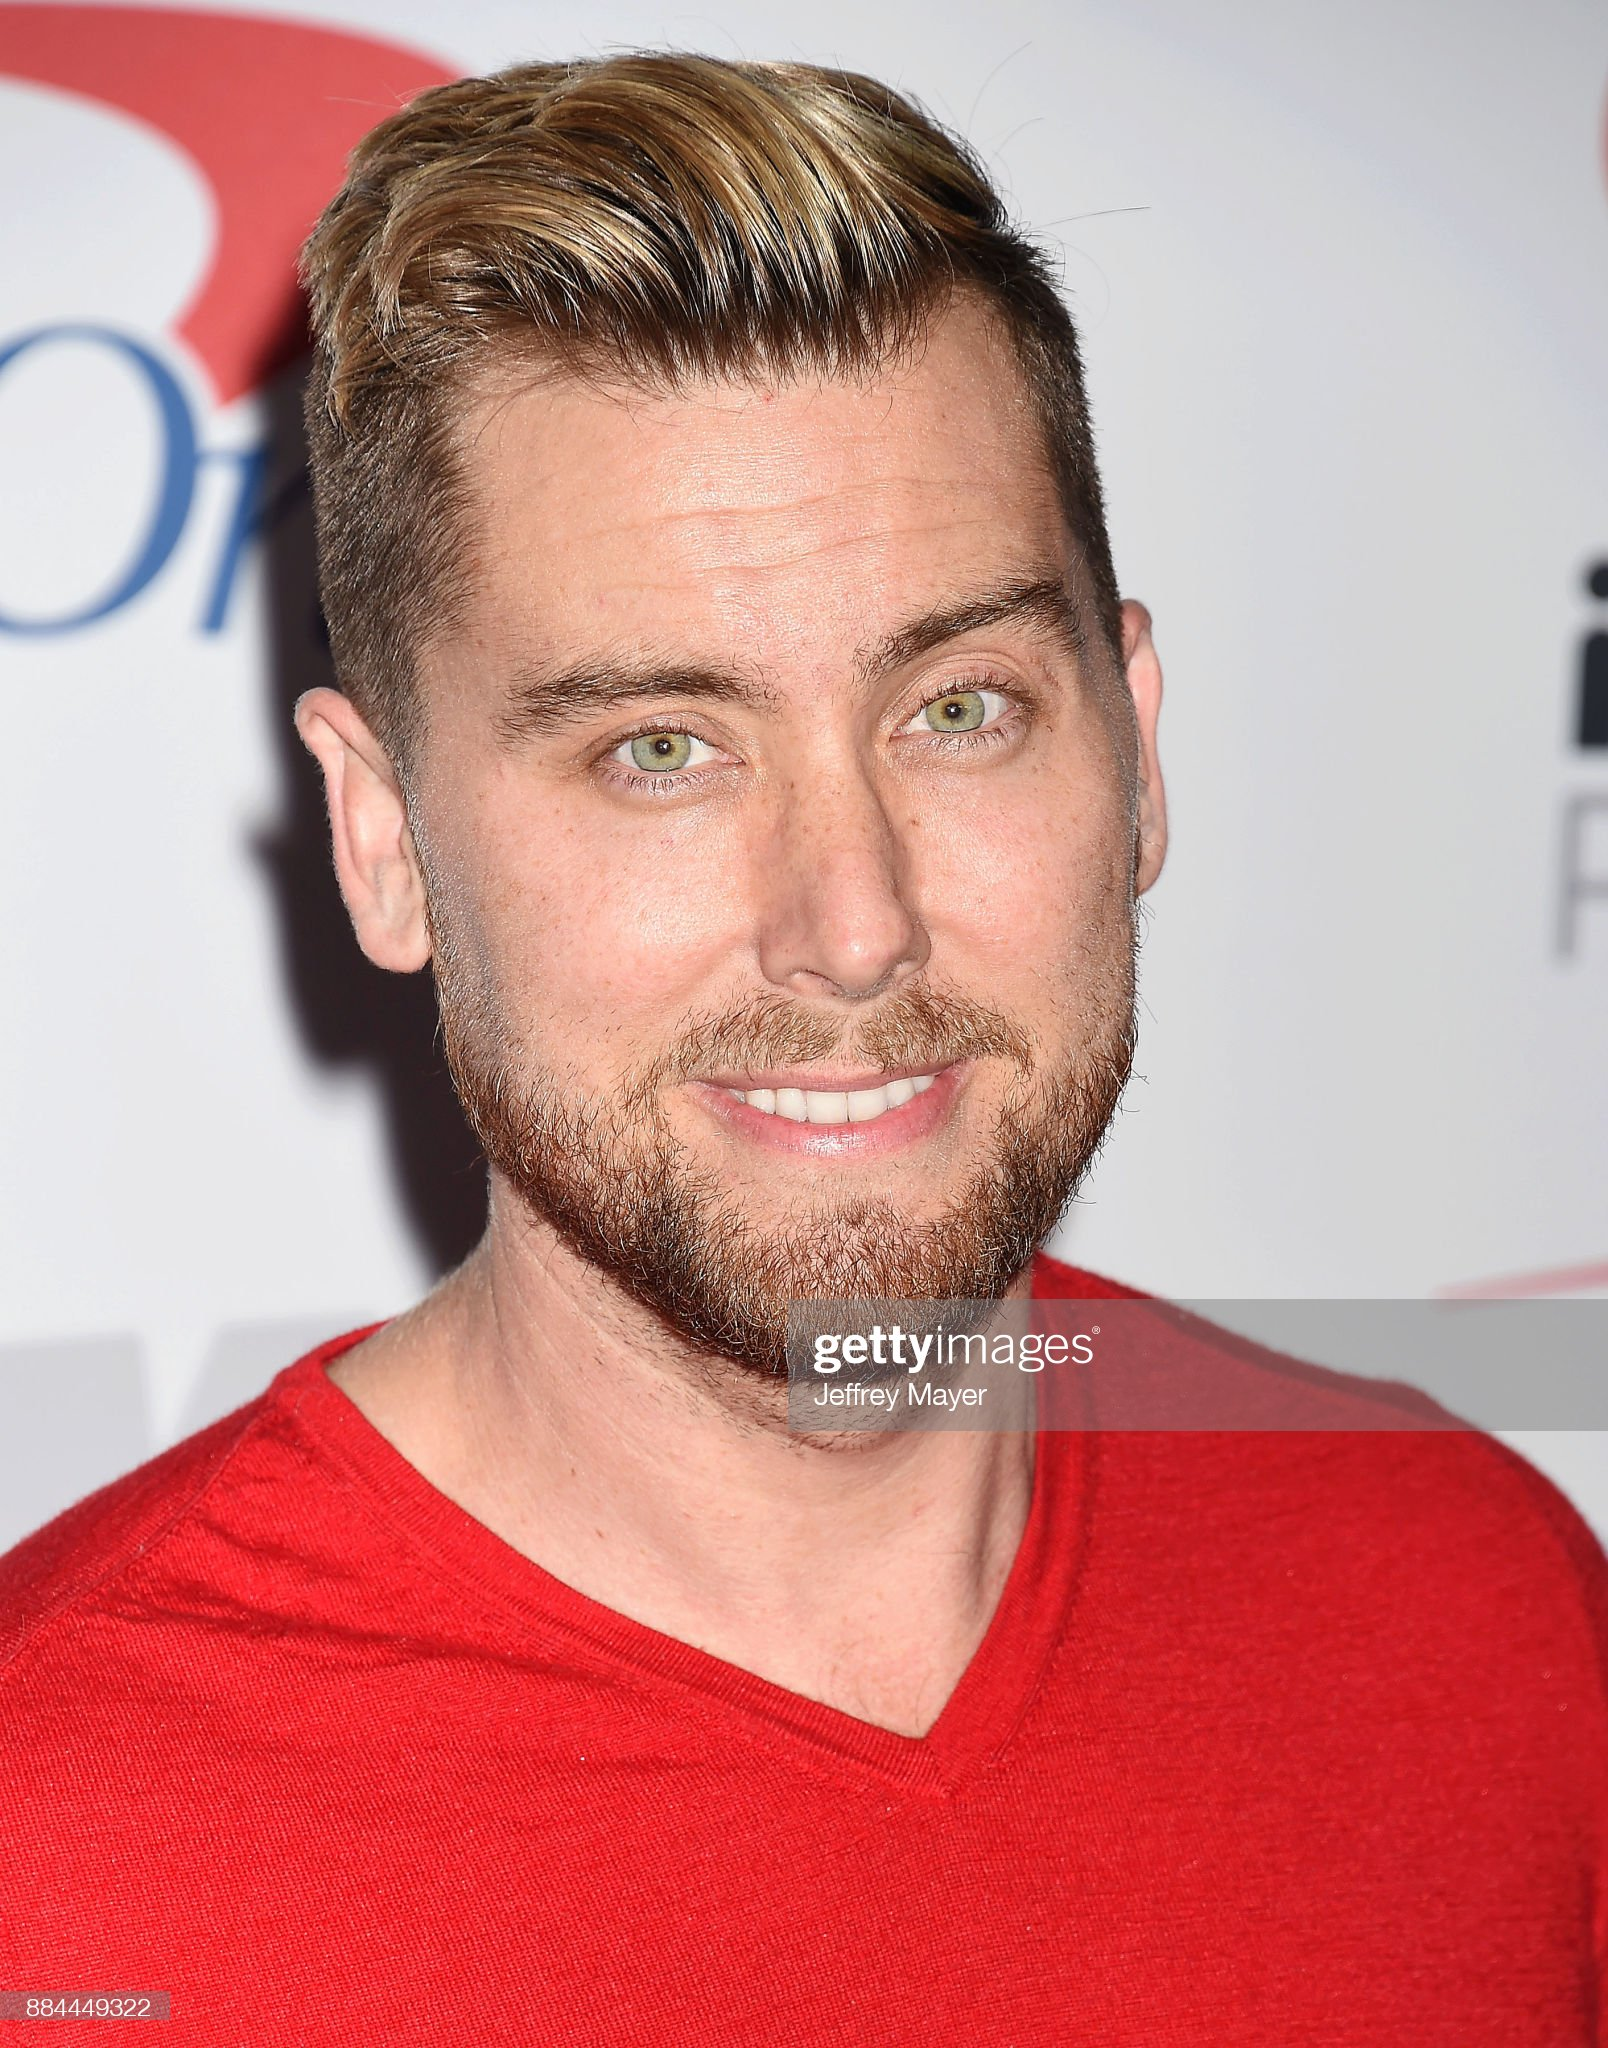 Ojos verdes - Famosas y famosos con los ojos de color VERDE Singerdanceractor-lance-bass-arrives-at-1027-kiis-fms-jingle-ball-at-picture-id884449322?s=2048x2048